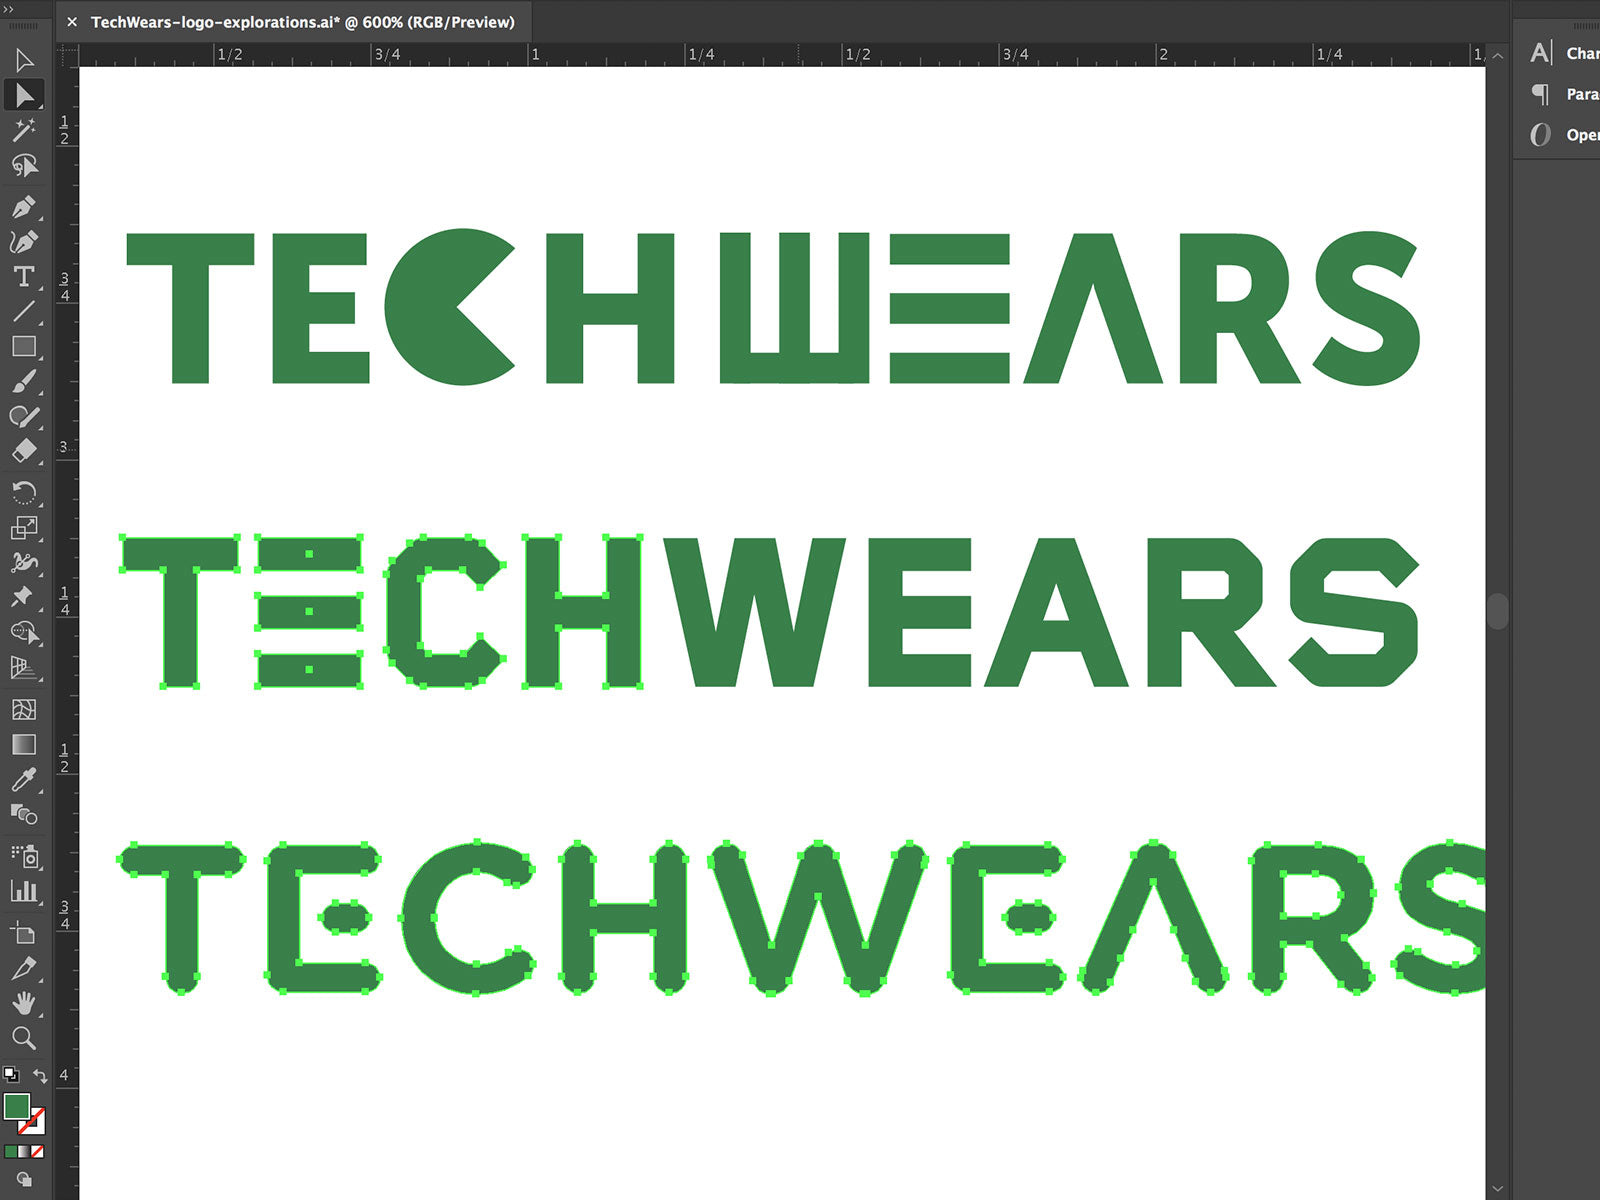 Typography sketches for TechWears logo